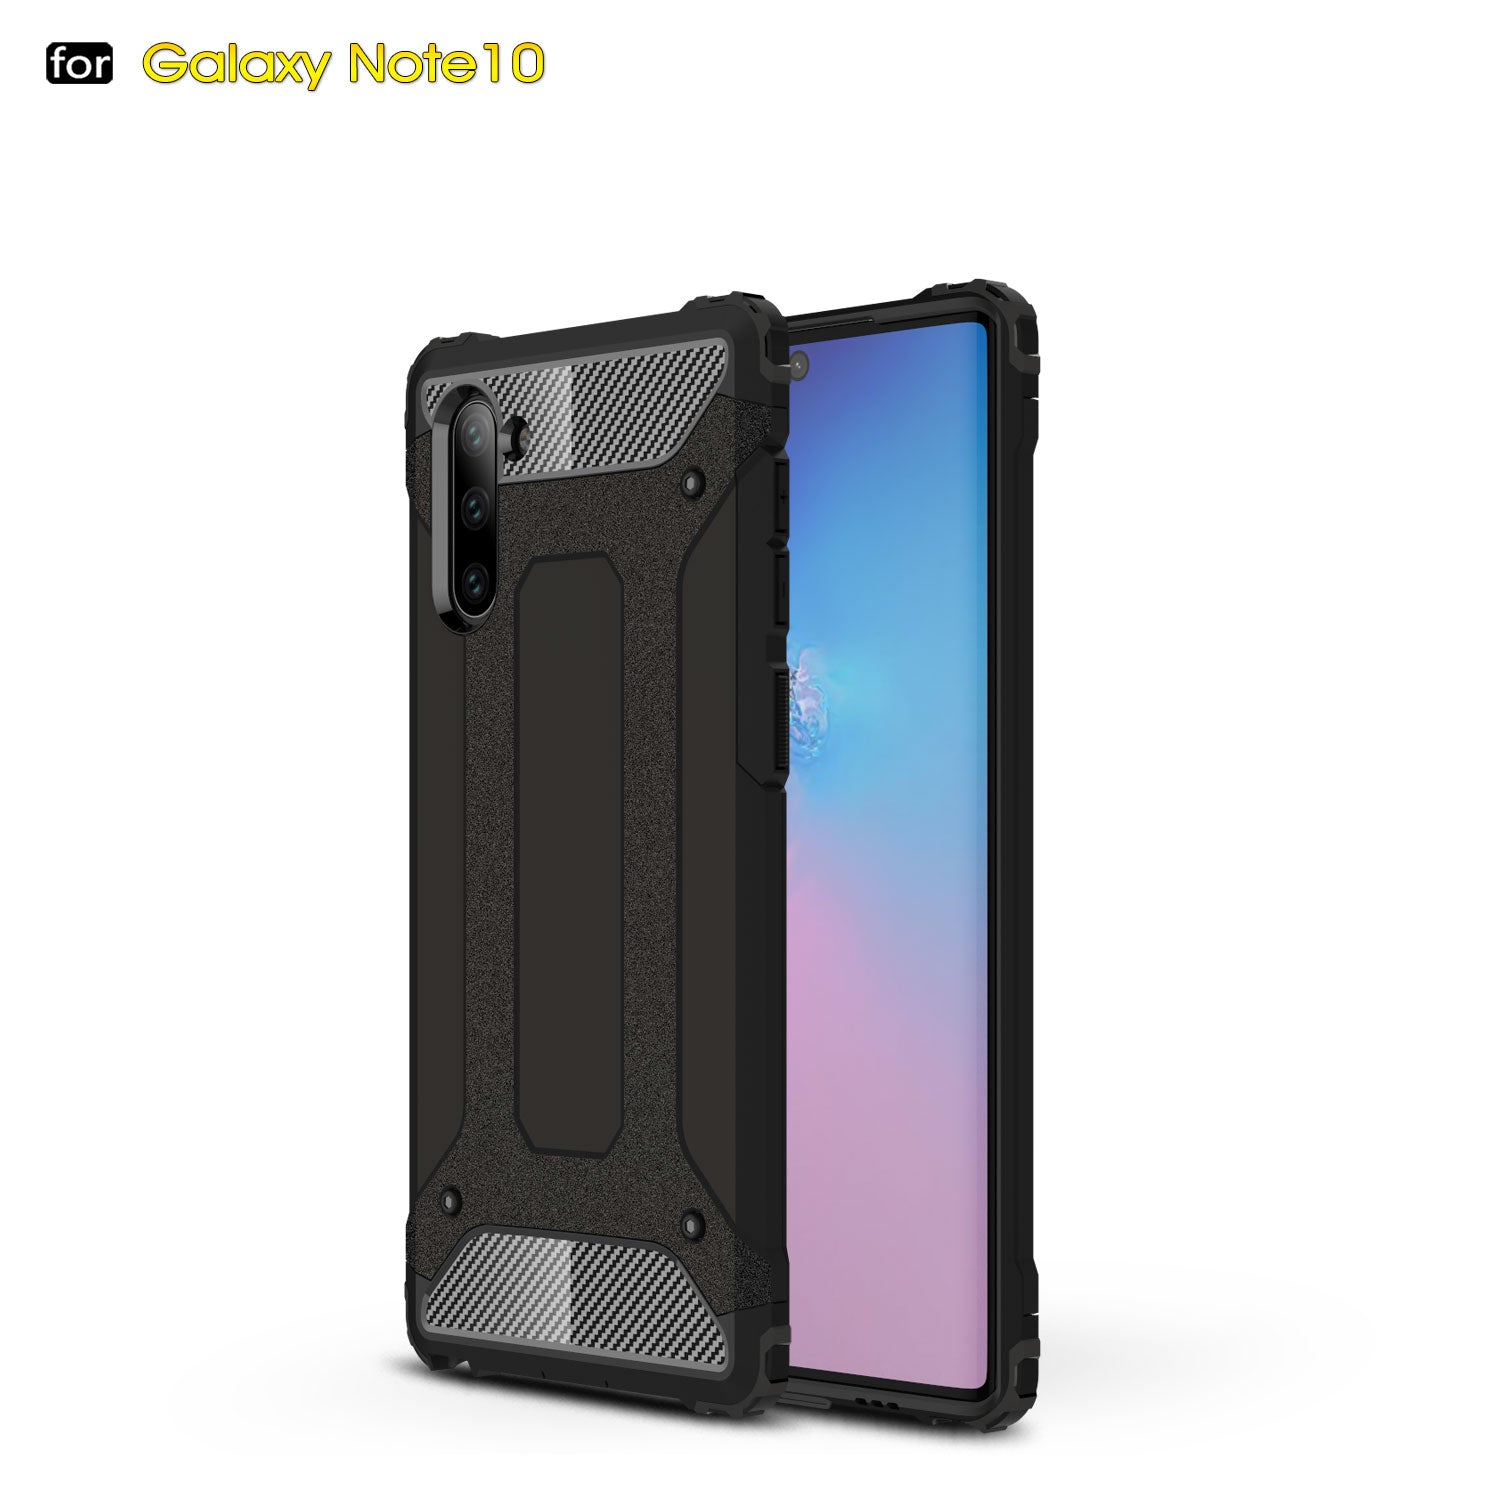 HYTX Galaxy Note 10 Case Armor ( Black )